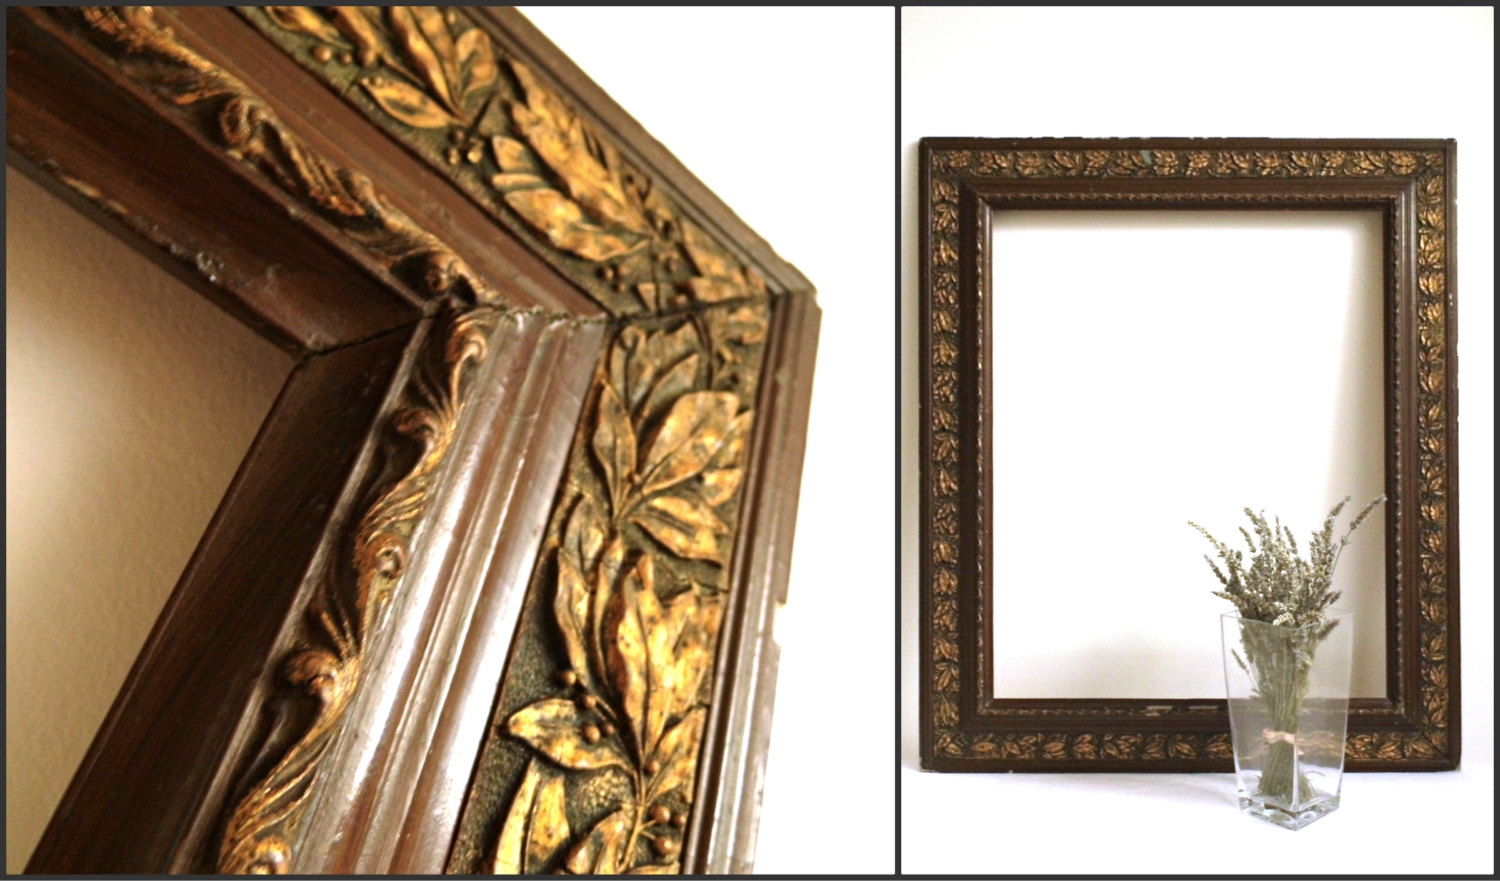 34 Vintage Large Wooden Frame Leaves Antique Picture Mirror In Ornate Mirror Large (Image 1 of 15)